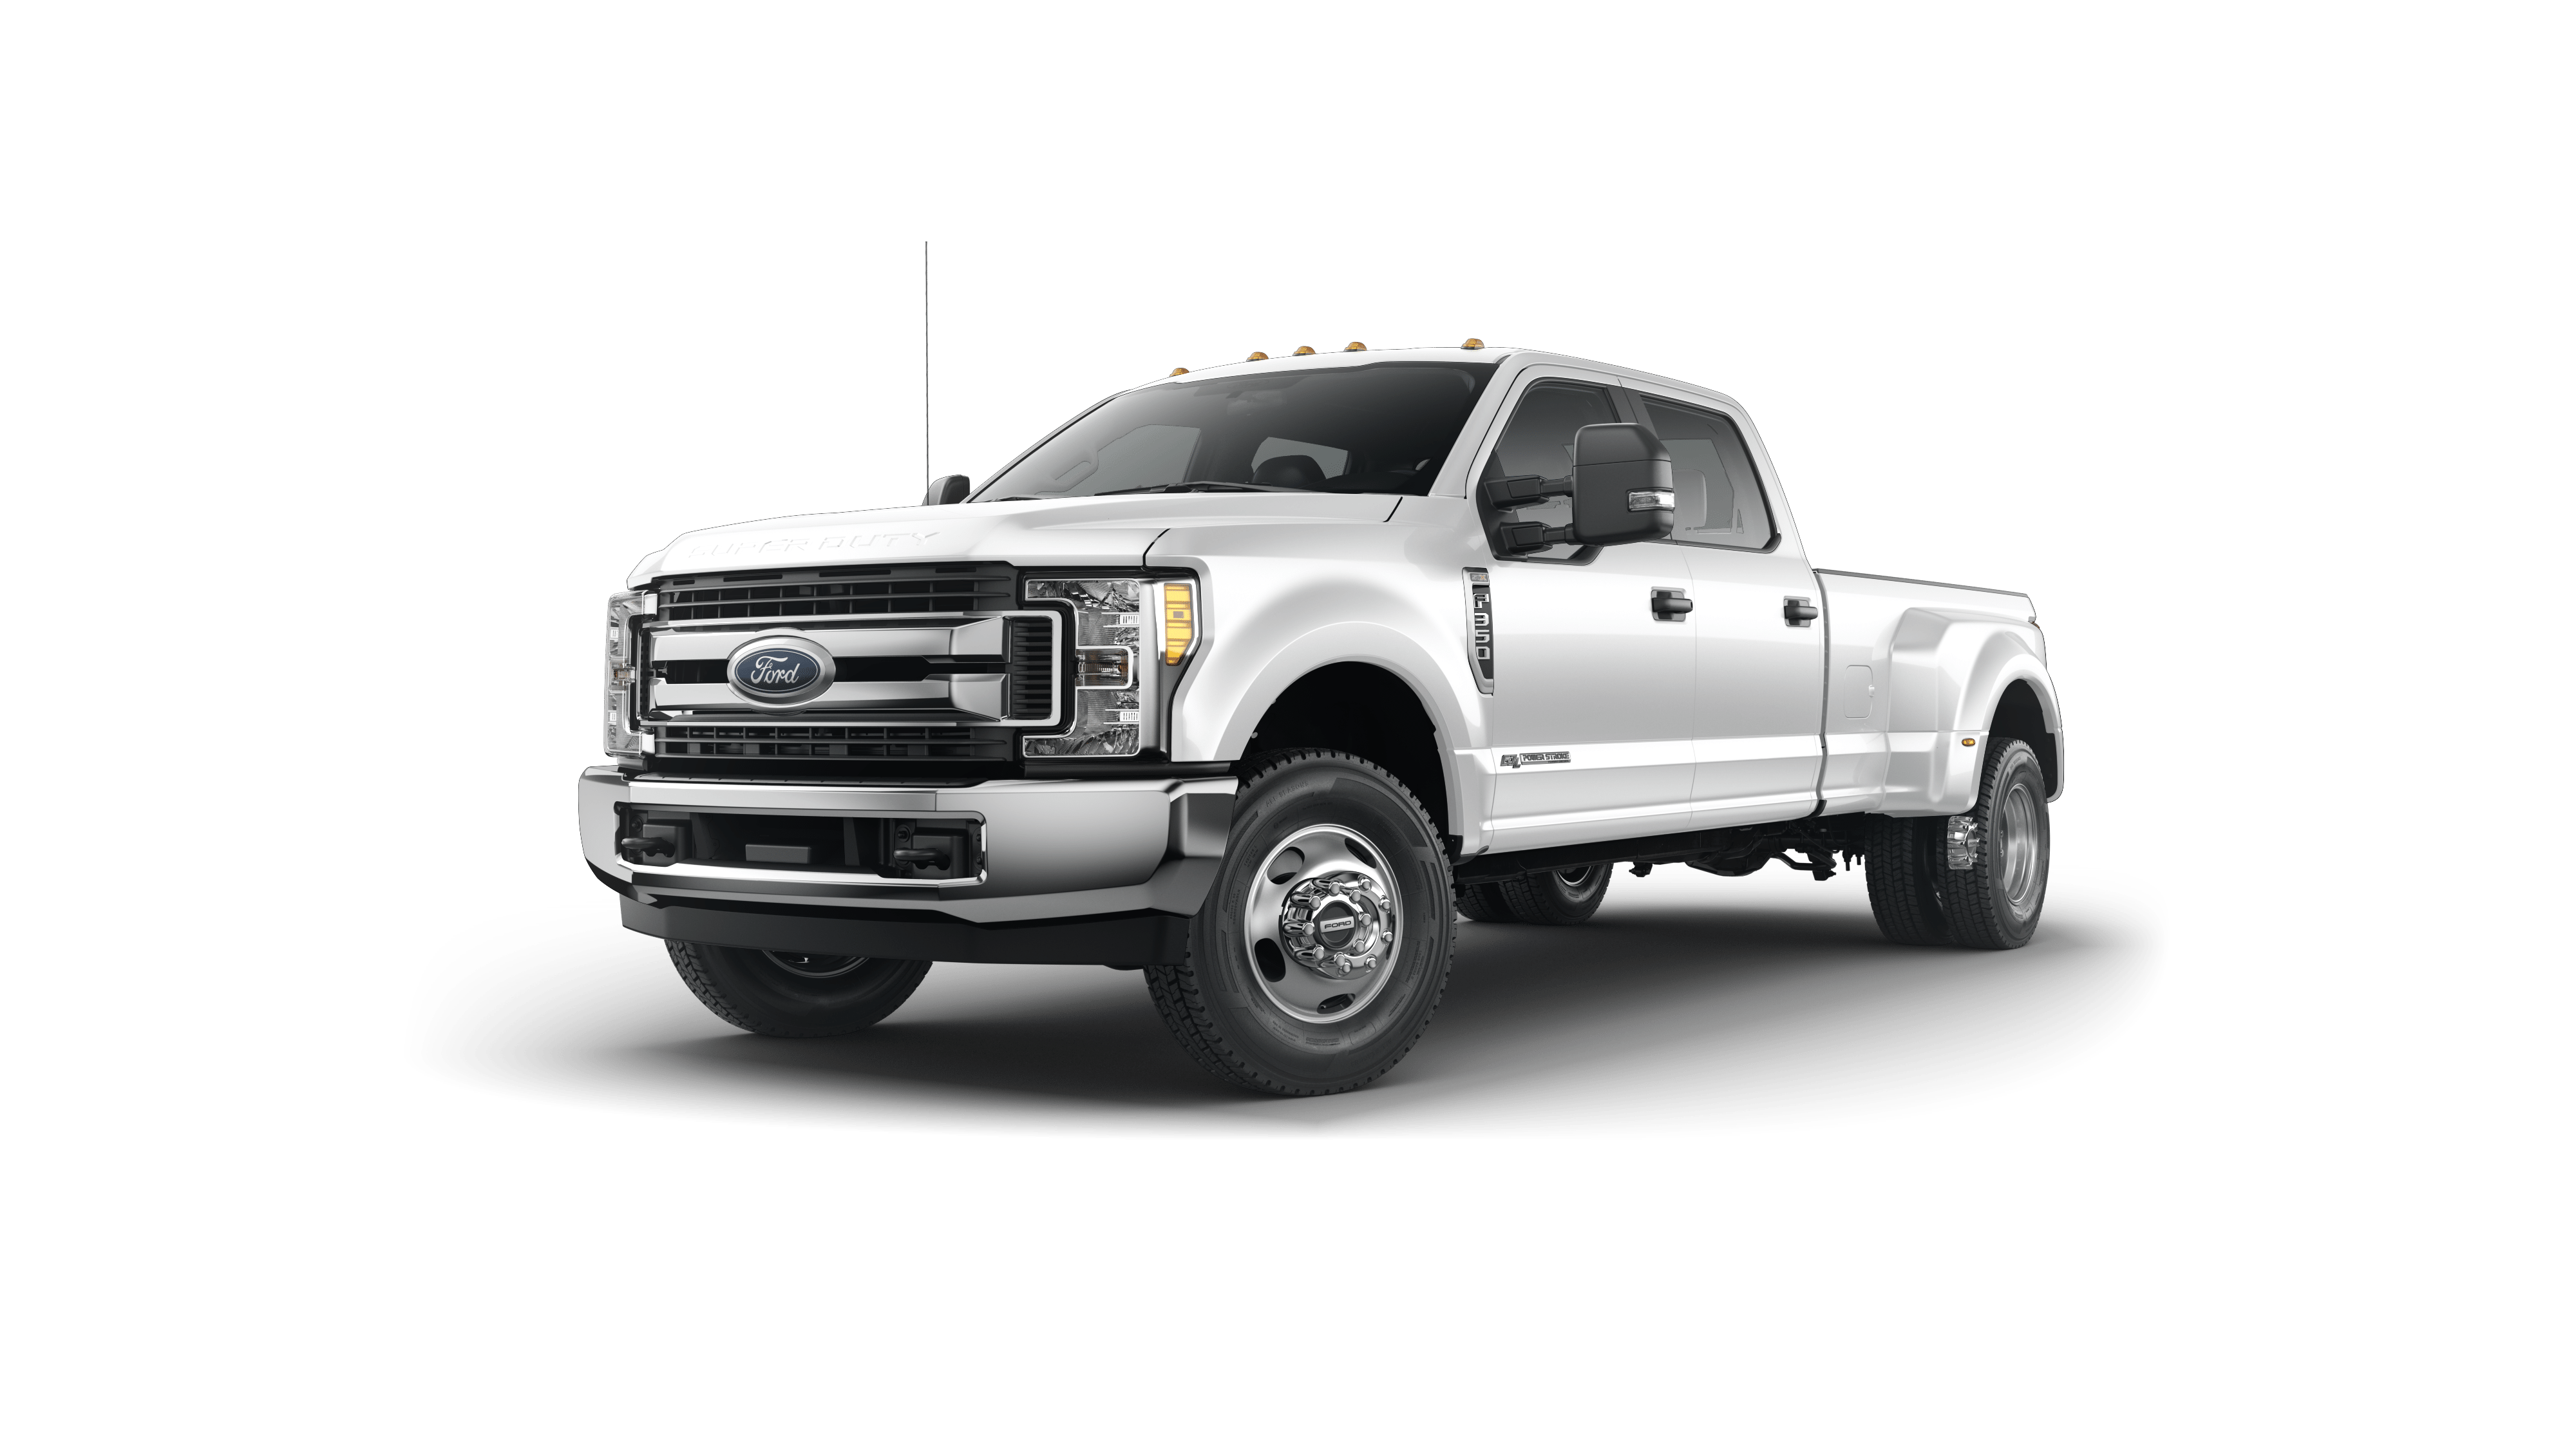 2018 Ford Super Duty F-350 DRW Vehicle Photo in Souderton, PA 18964-1038